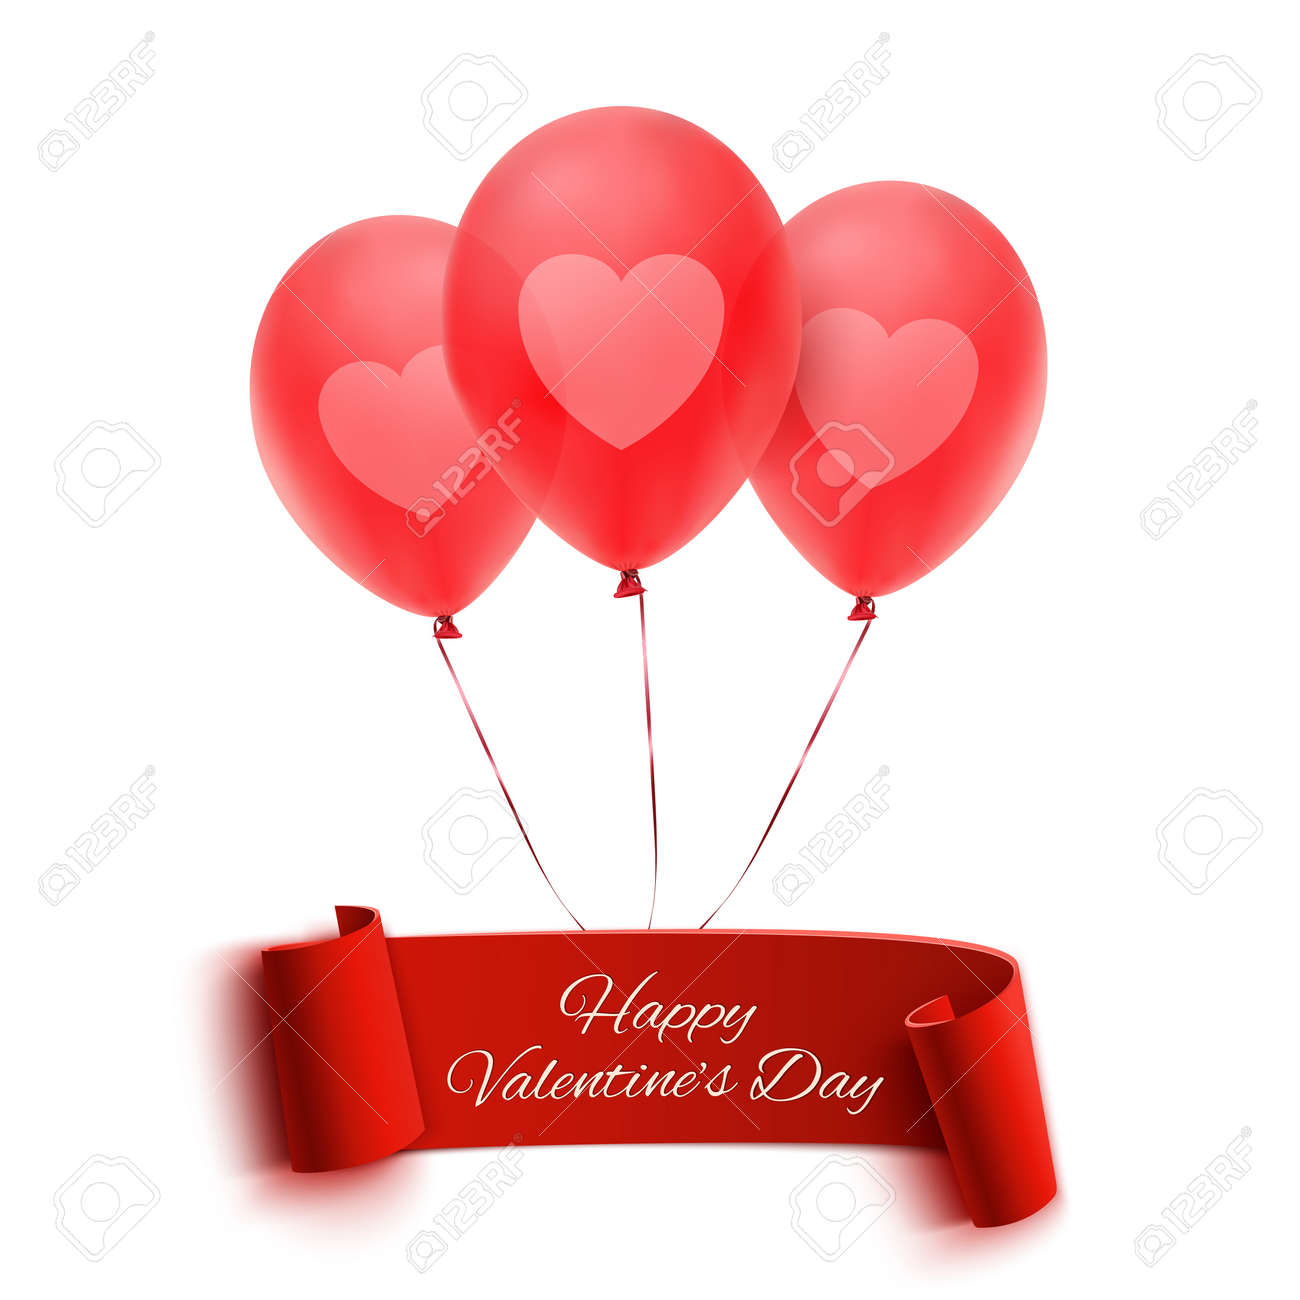 happy valentines day banner with three balloons valentines day greeting card vector illustration stock